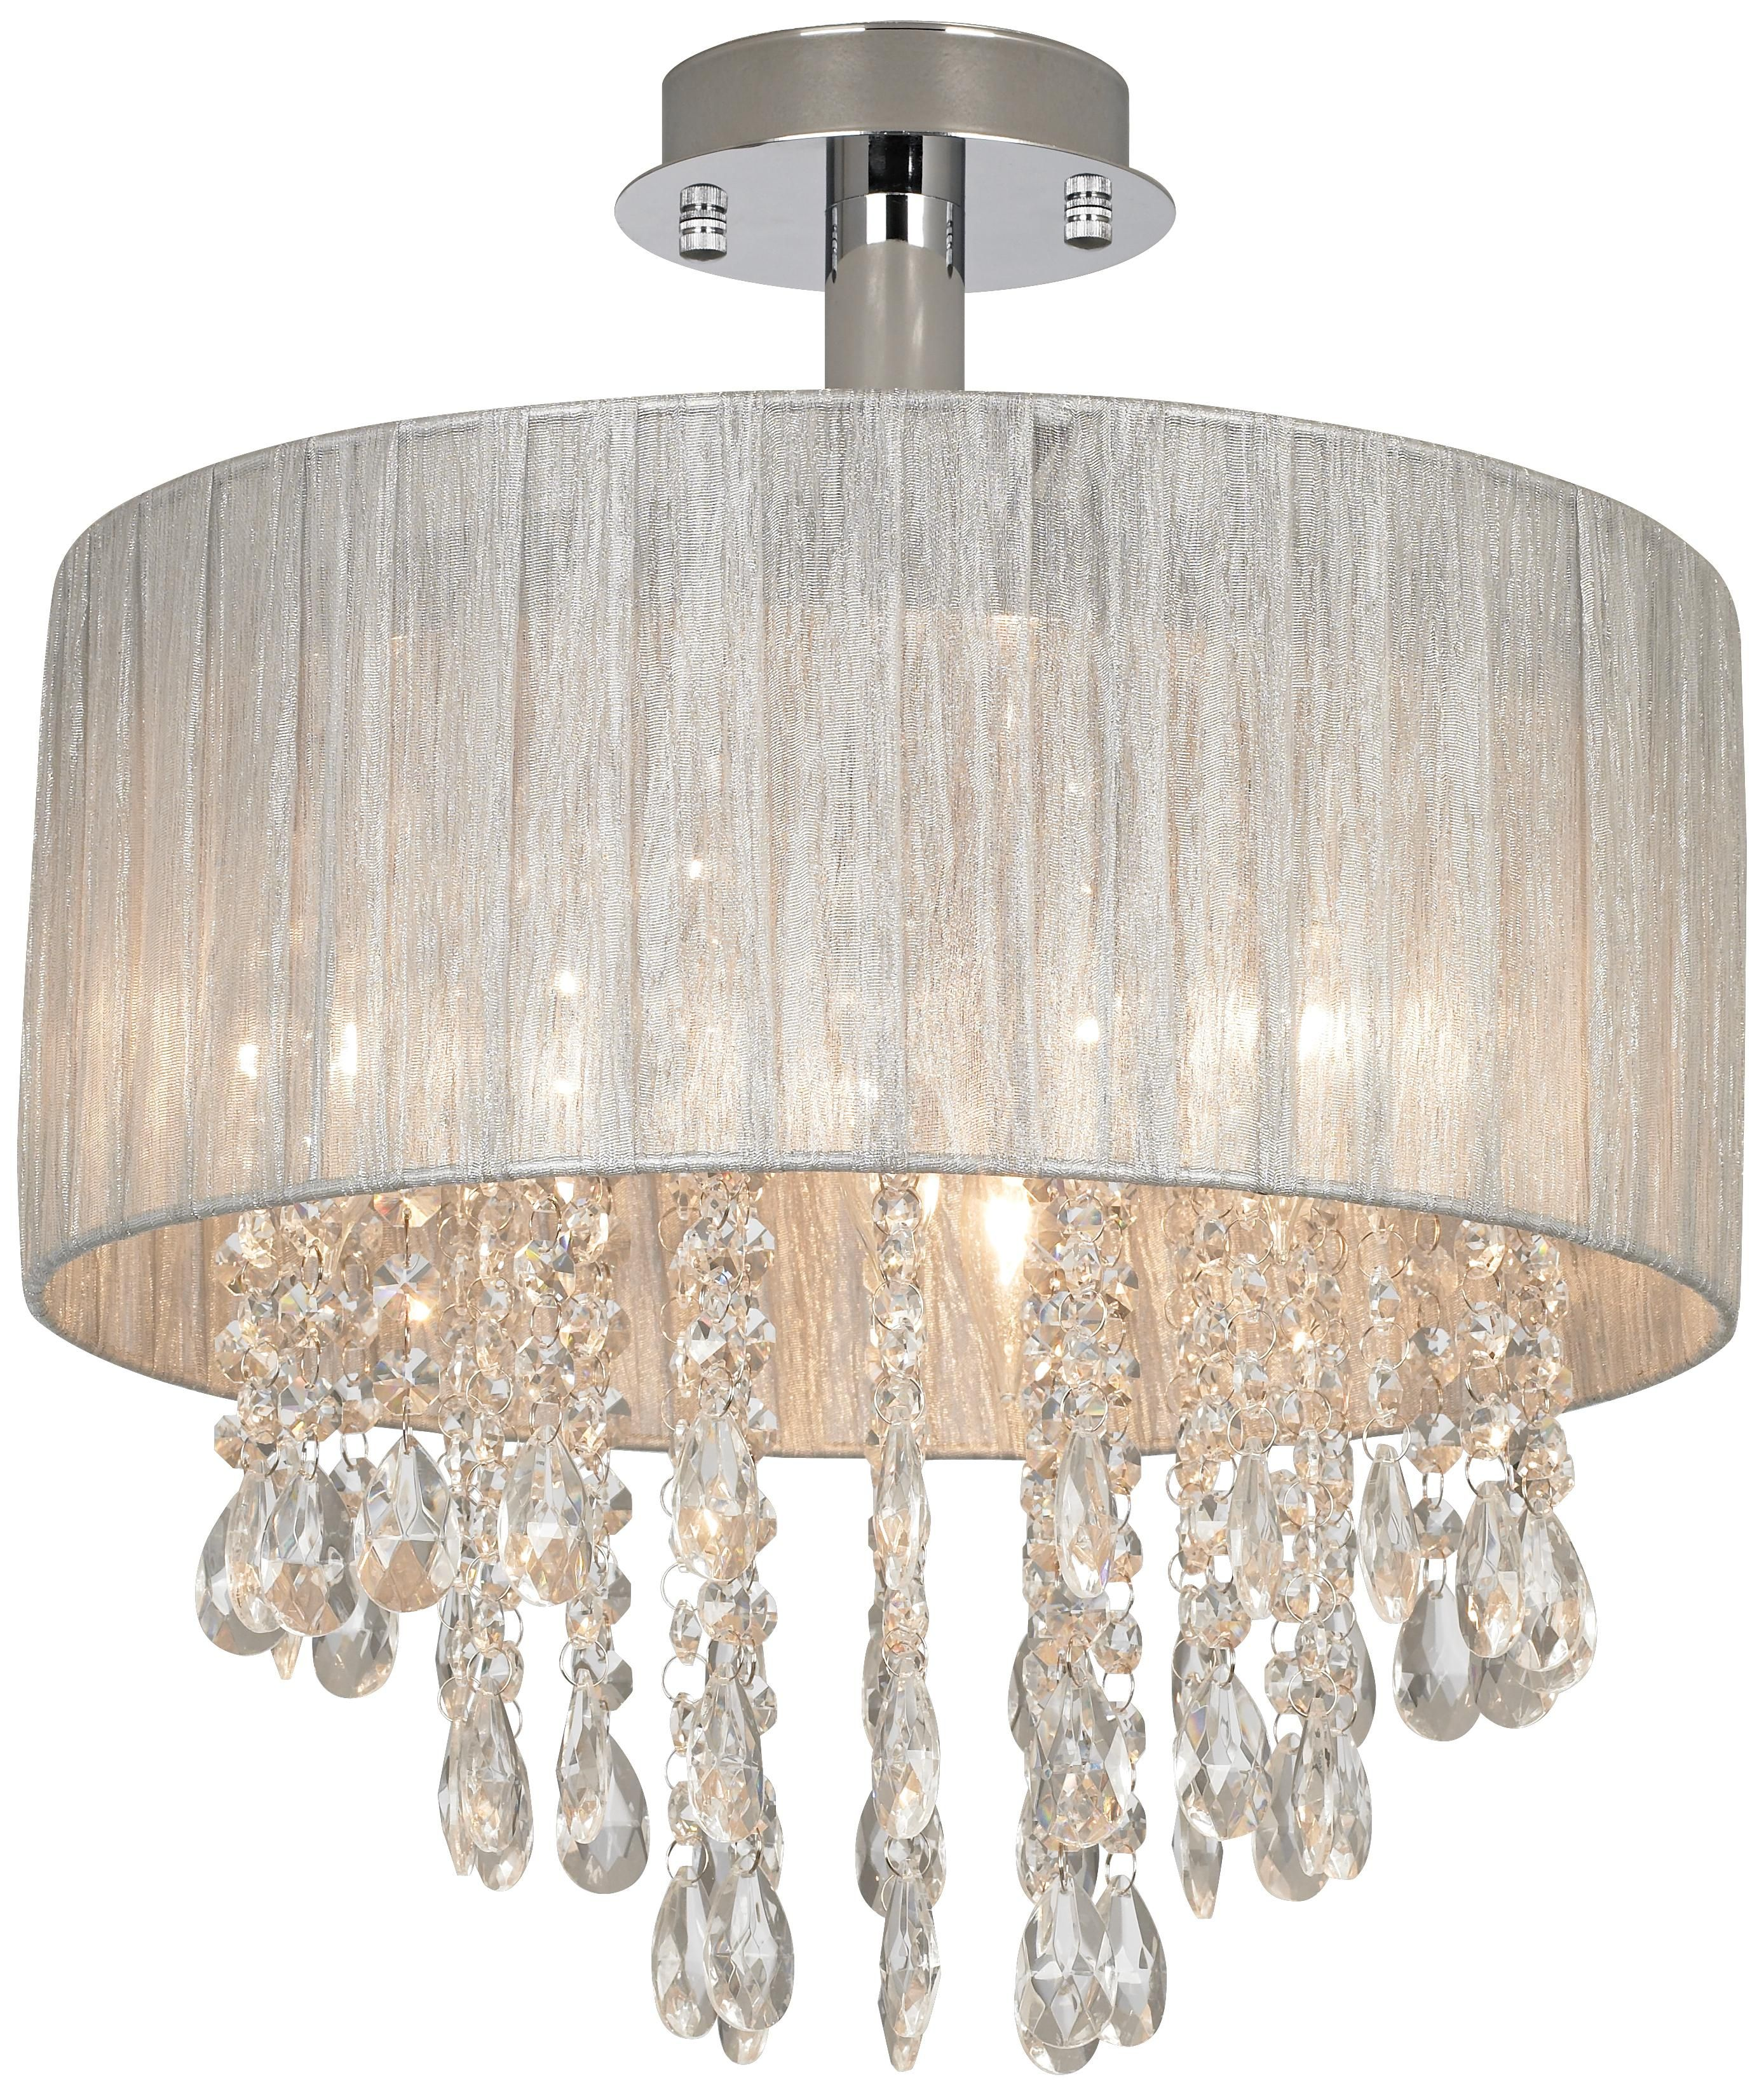 """Possini Euro Jolie 15"""" Wide Silver and Crystal Ceiling ..."""